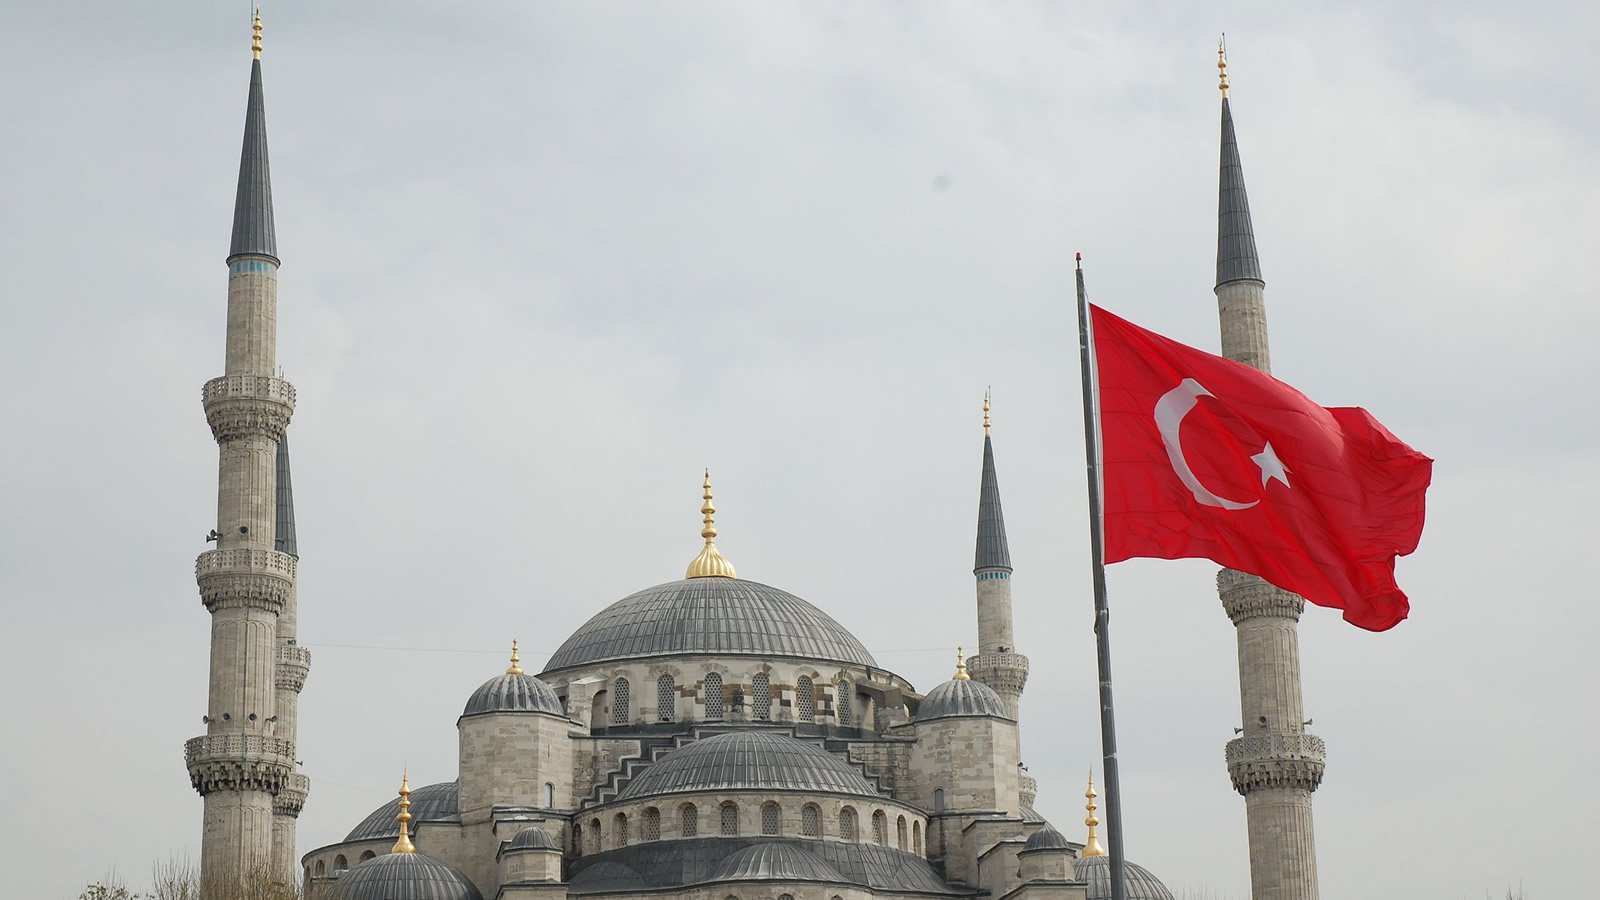 Hagia Sophia with Turkish flag